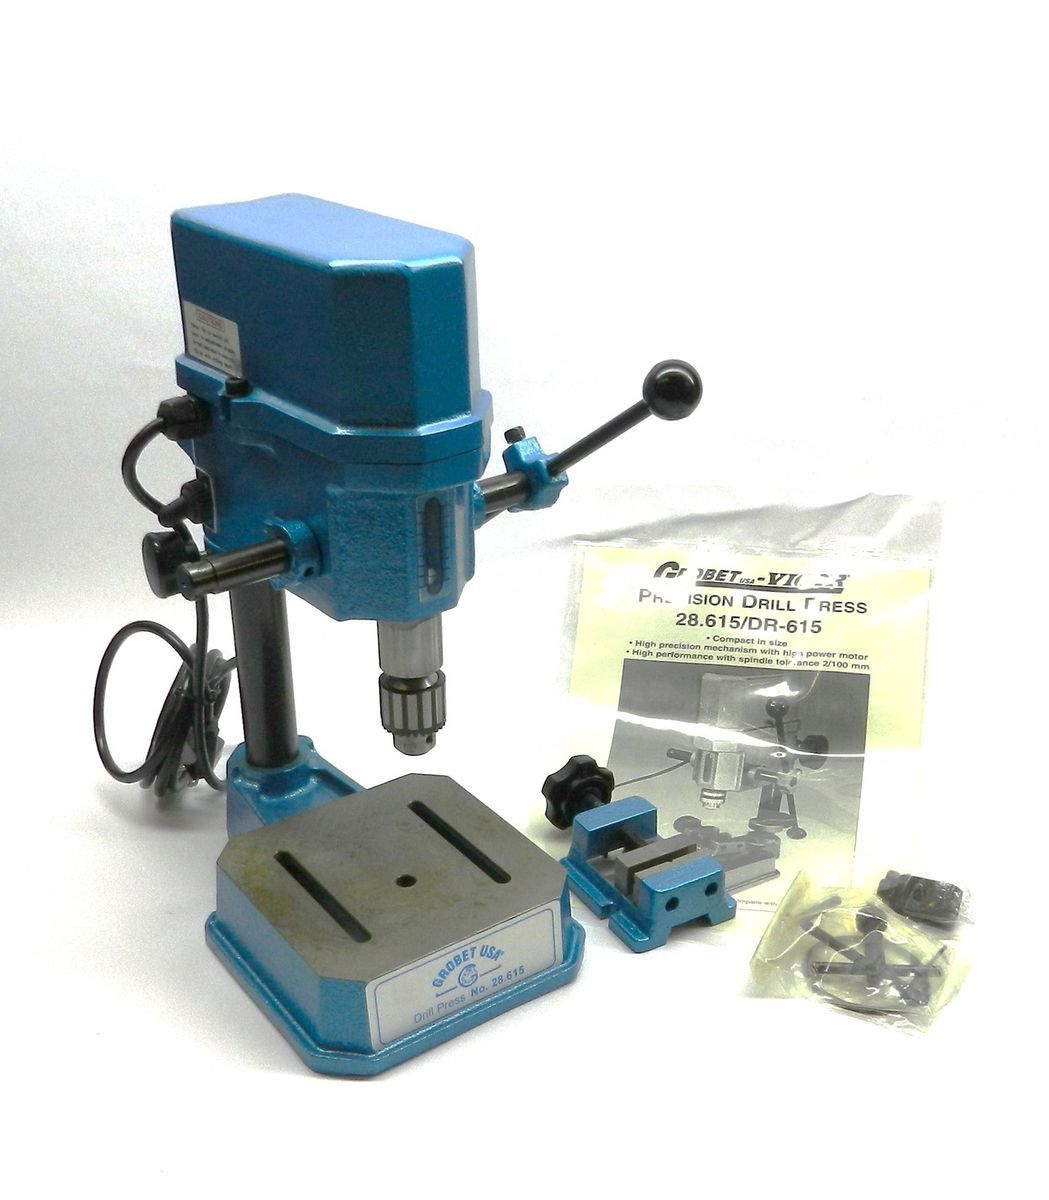 Drill Press Grobet Precision With Vise Mini 28 Circuit Board 30798550140 For Jancy Power Tool Ereplacement Parts